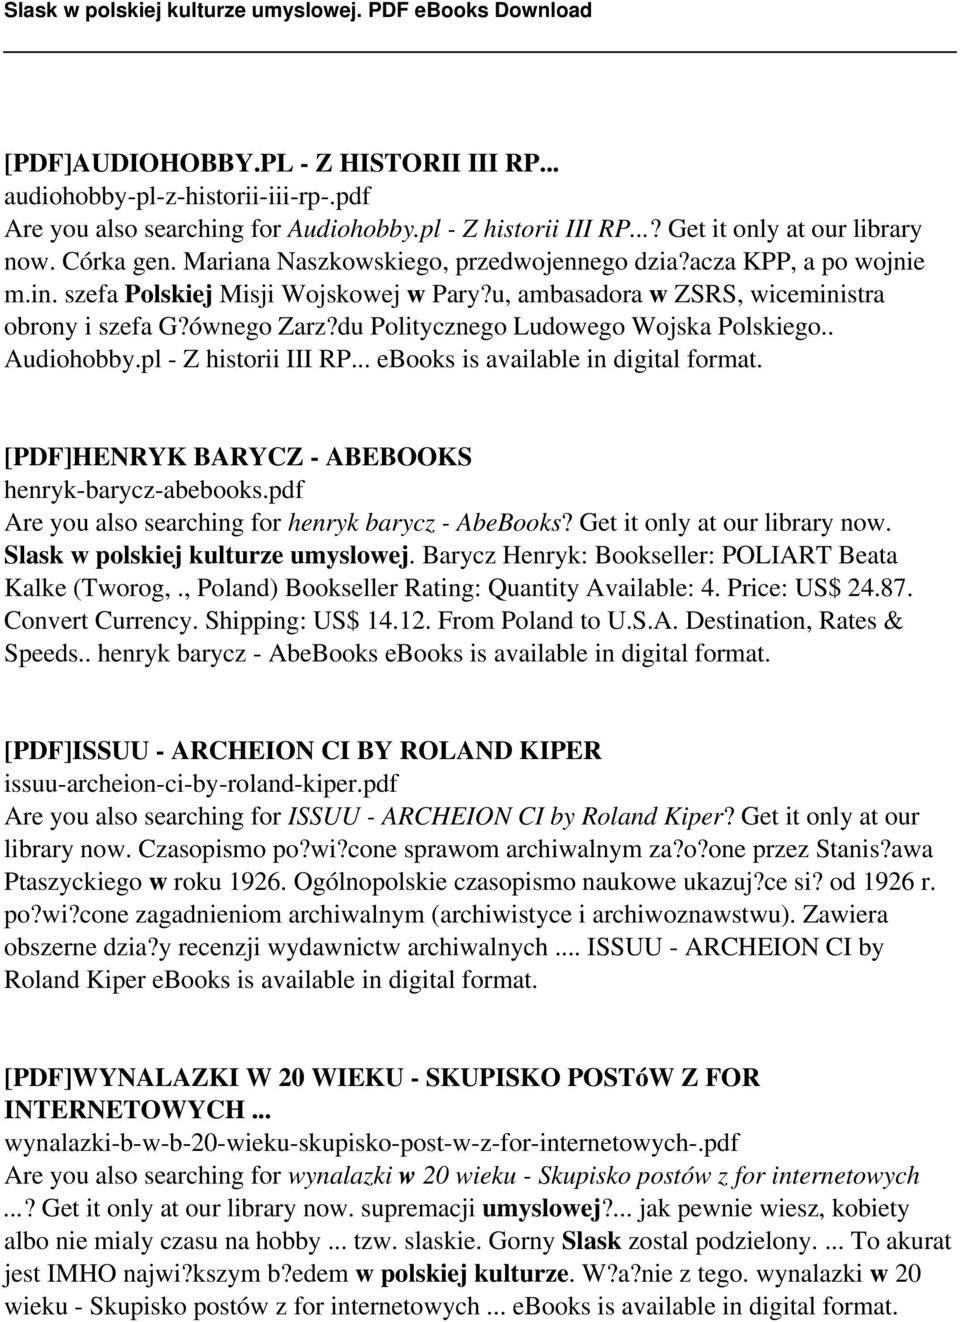 du Politycznego Ludowego Wojska Polskiego.. Audiohobby.pl - Z historii III RP... ebooks is available in digital format. [PDF]HENRYK BARYCZ - ABEBOOKS henryk-barycz-abebooks.